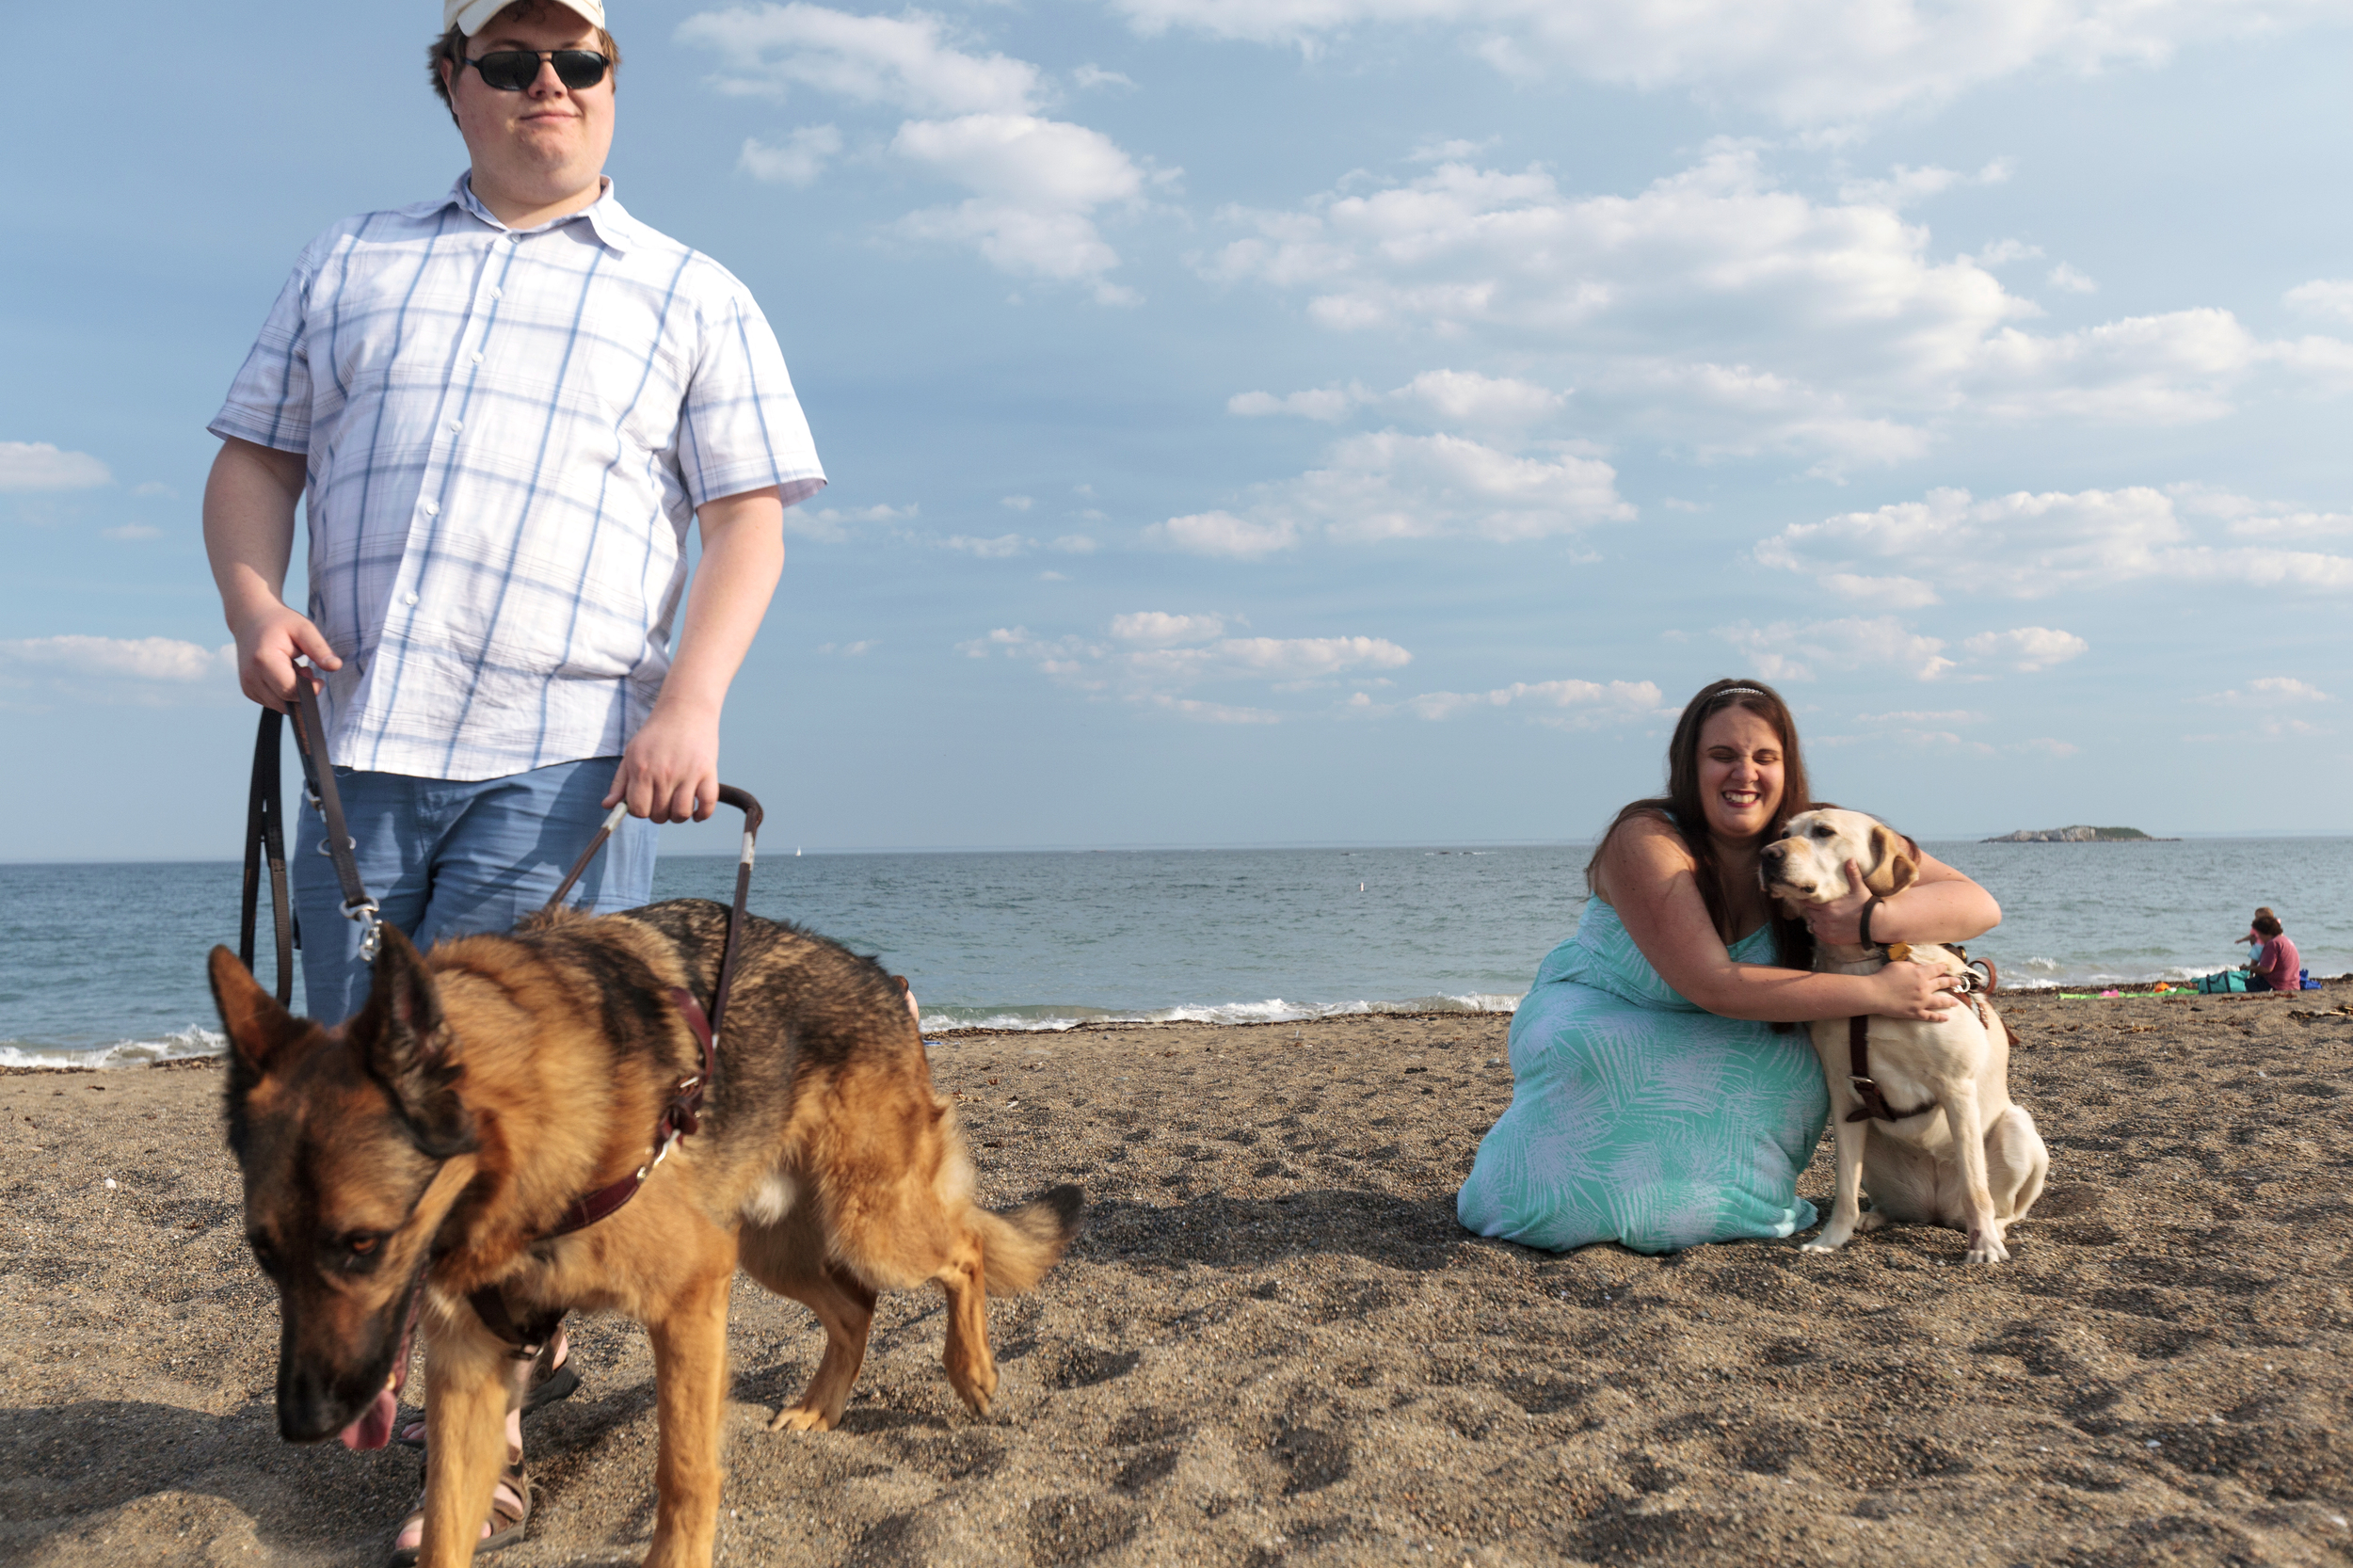 A blind couple enjoying the beach with their guide dogs.